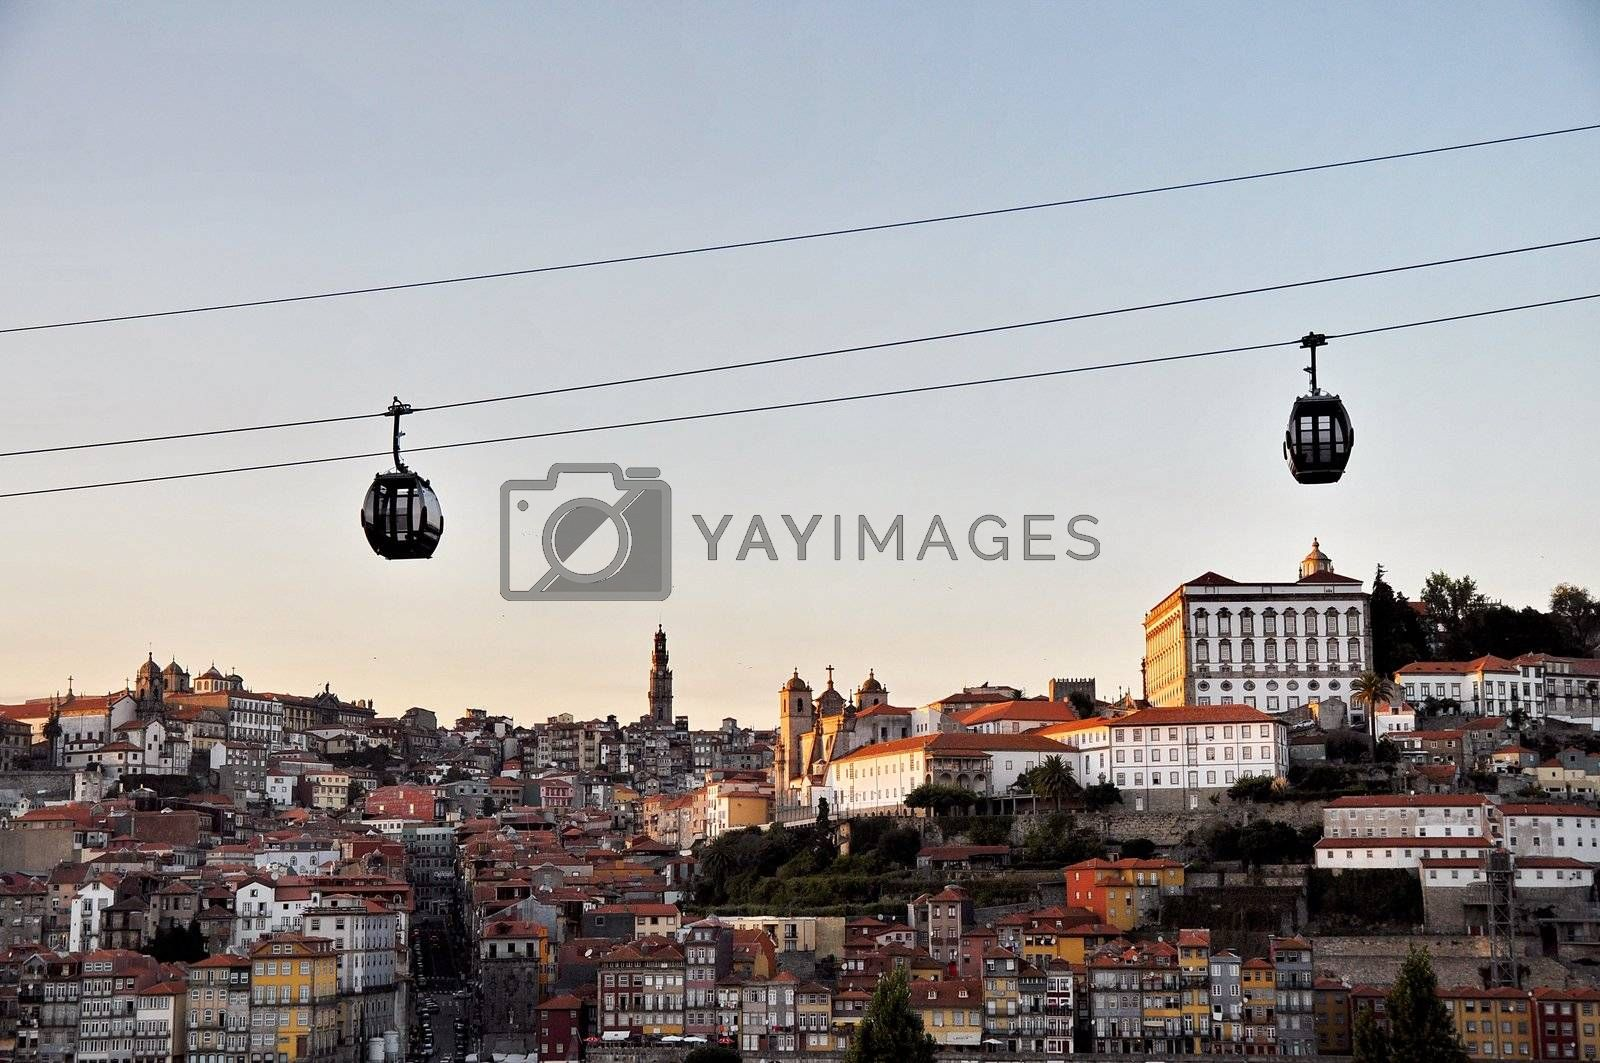 Cable car of Porto (Portugal) by anderm